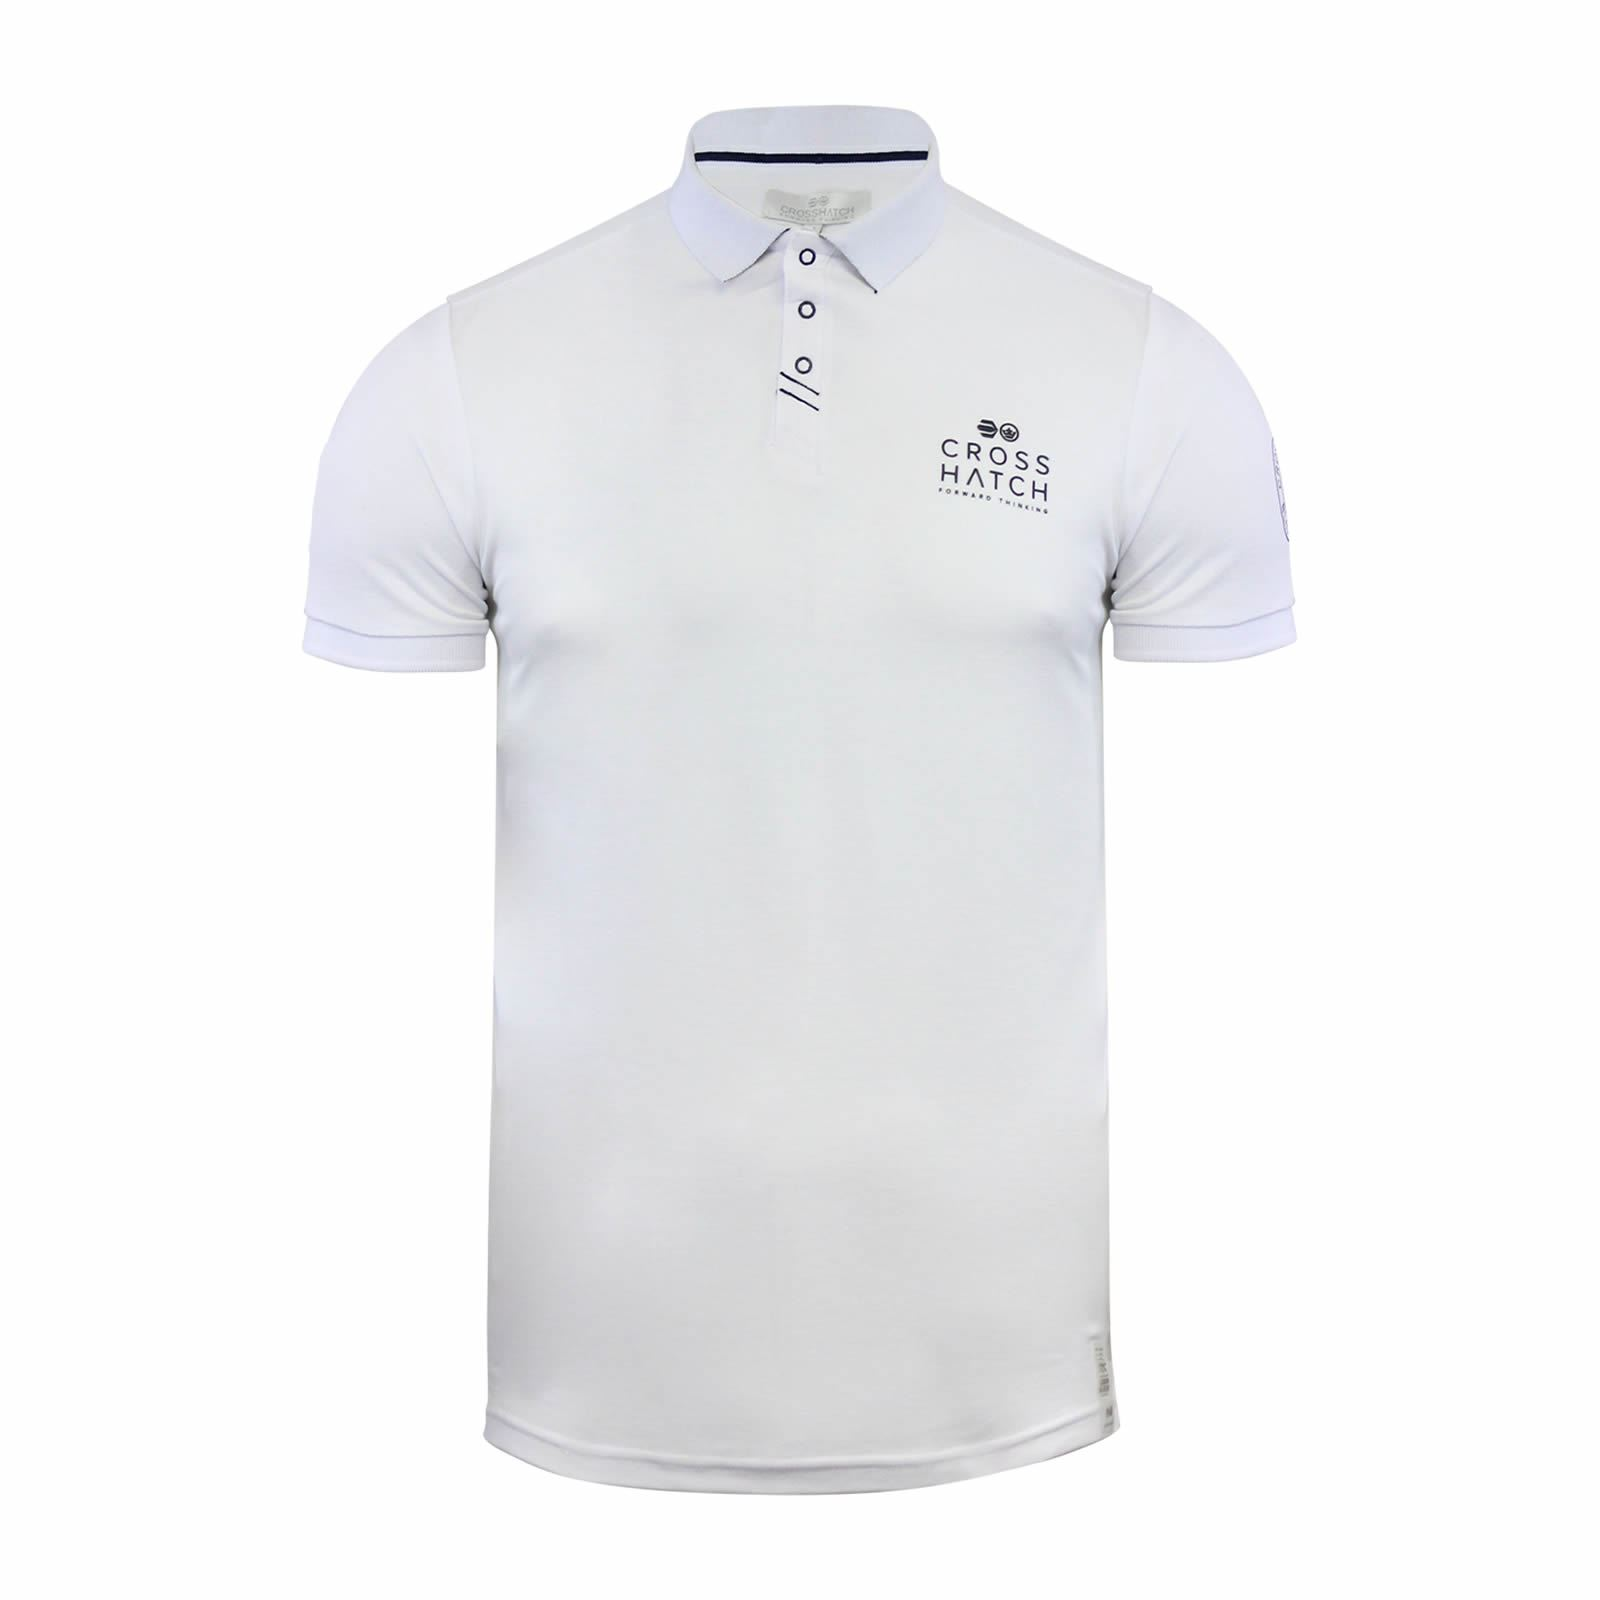 Crosshatch-Mens-Polo-T-Shirt-Pique-Polo-Cotton-Collared-Short-Sleeve-T-Shirt thumbnail 70